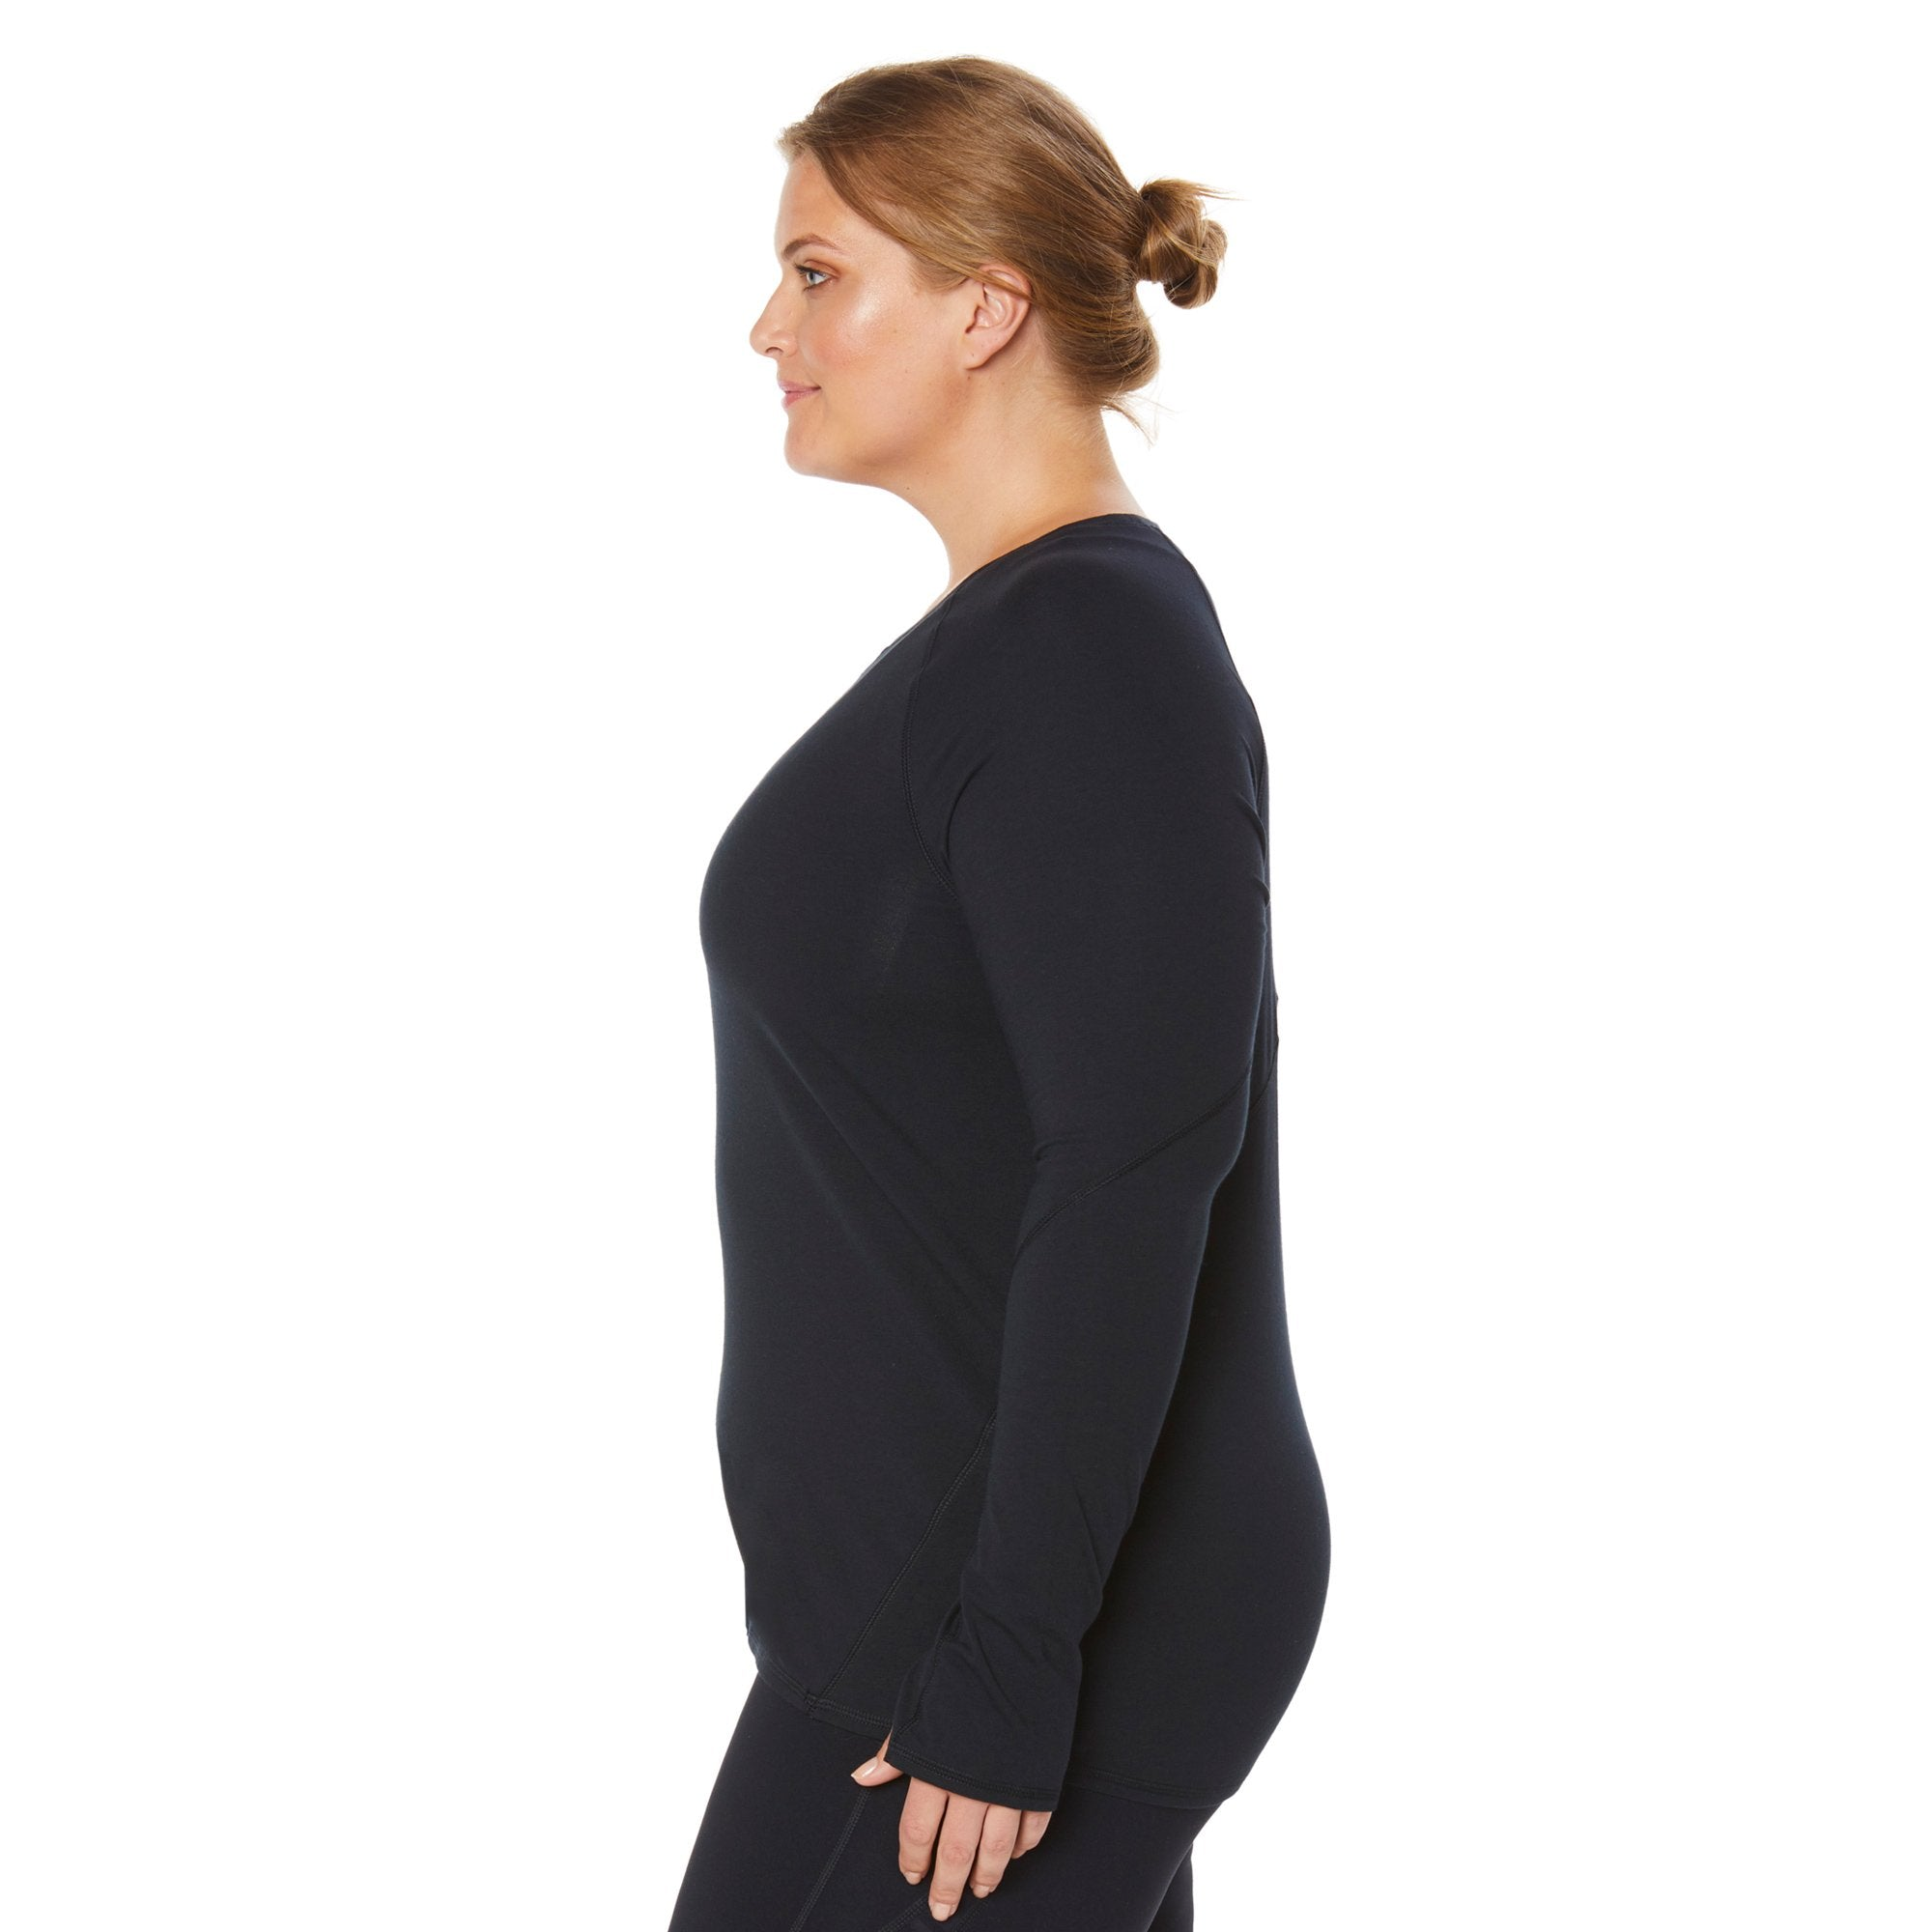 98930e9095d48 Plus Size Long Sleeve Shirts With Thumb Holes